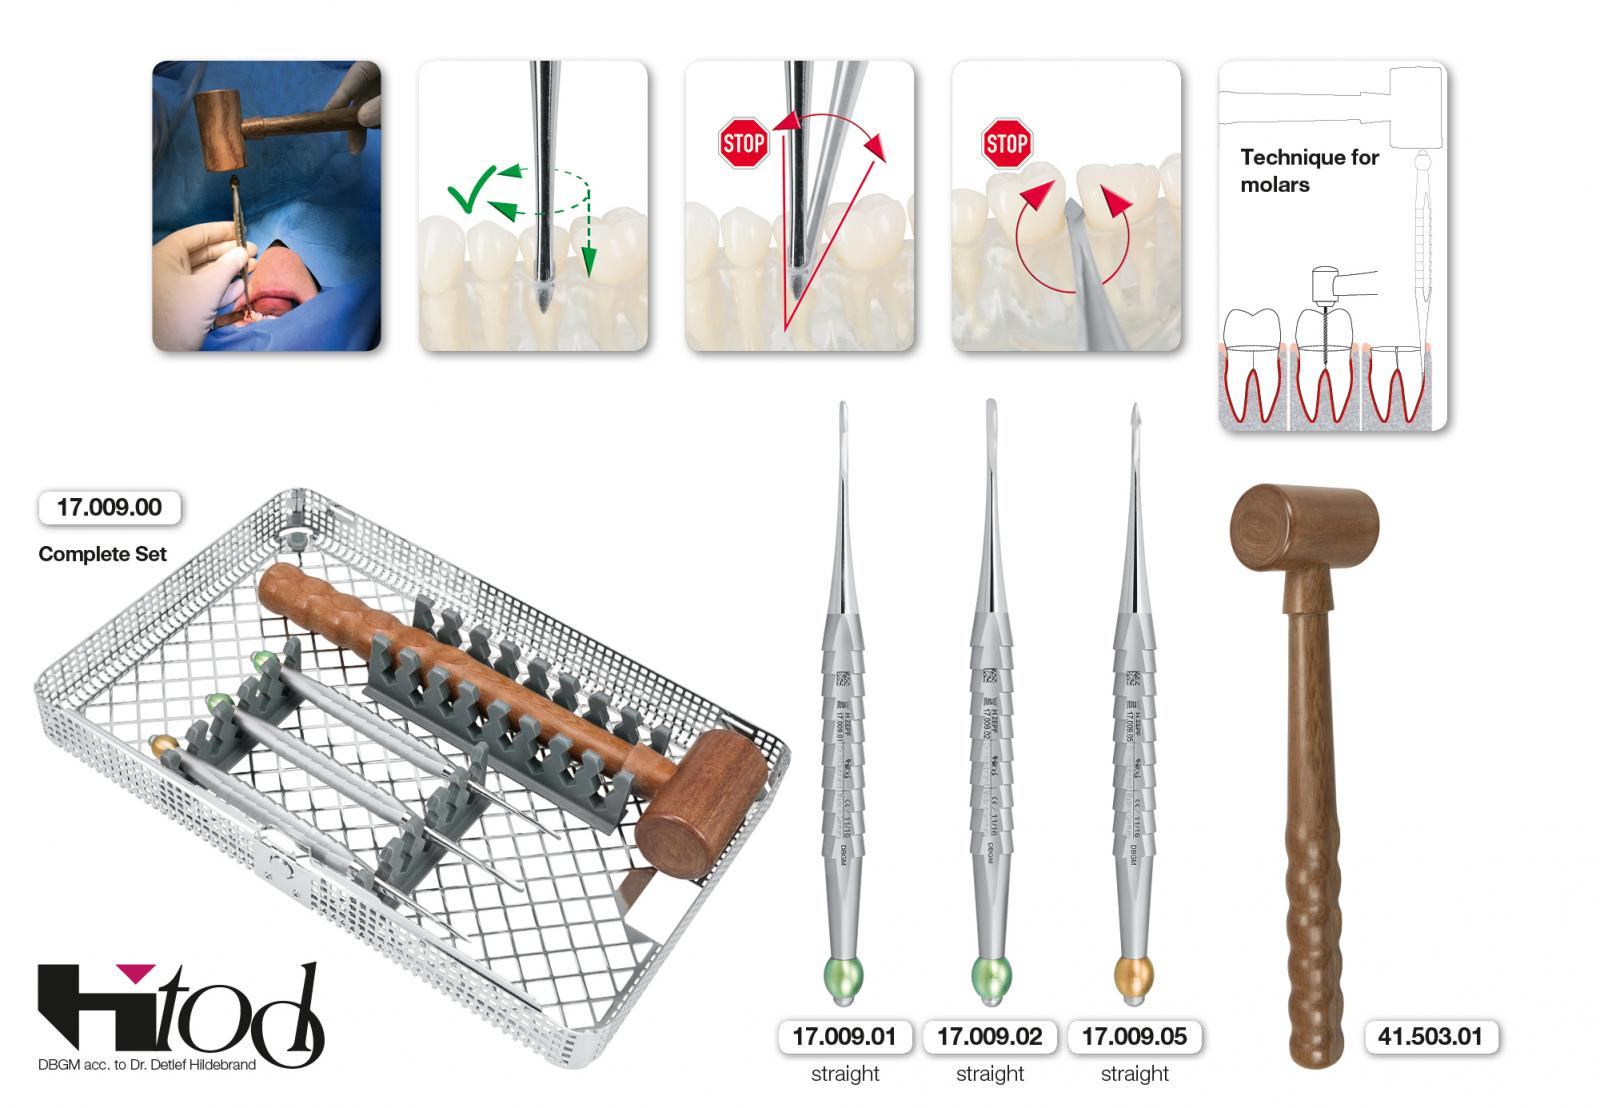 X-TOOL, H-TOOL KIT BY DR. HILDEBRAND, ORGANIZED IN A WASHBASKET INCL. A FERROZELL HAMMER